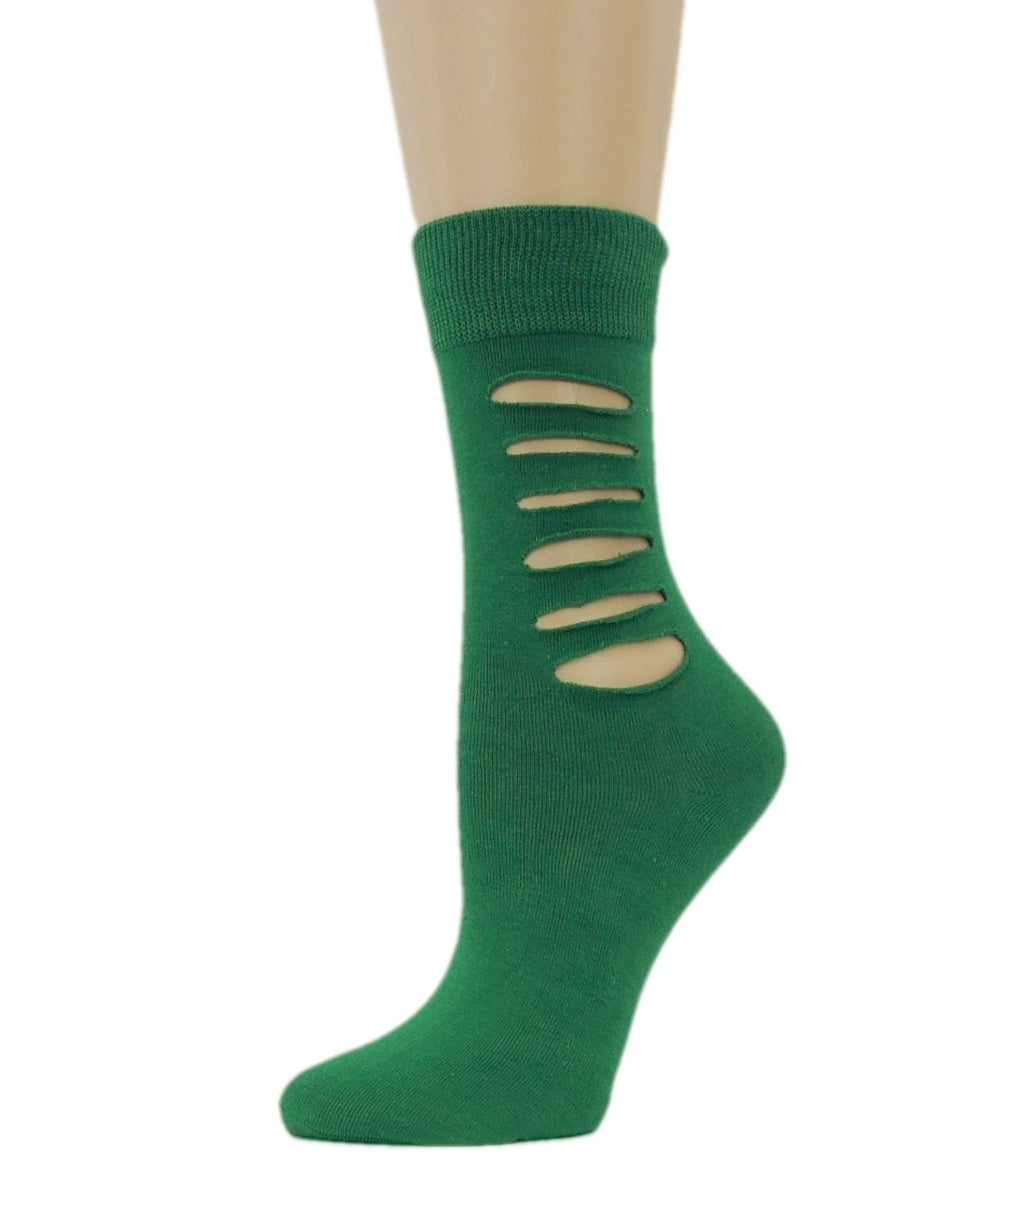 Ripped Leaf Green Cotton Socks